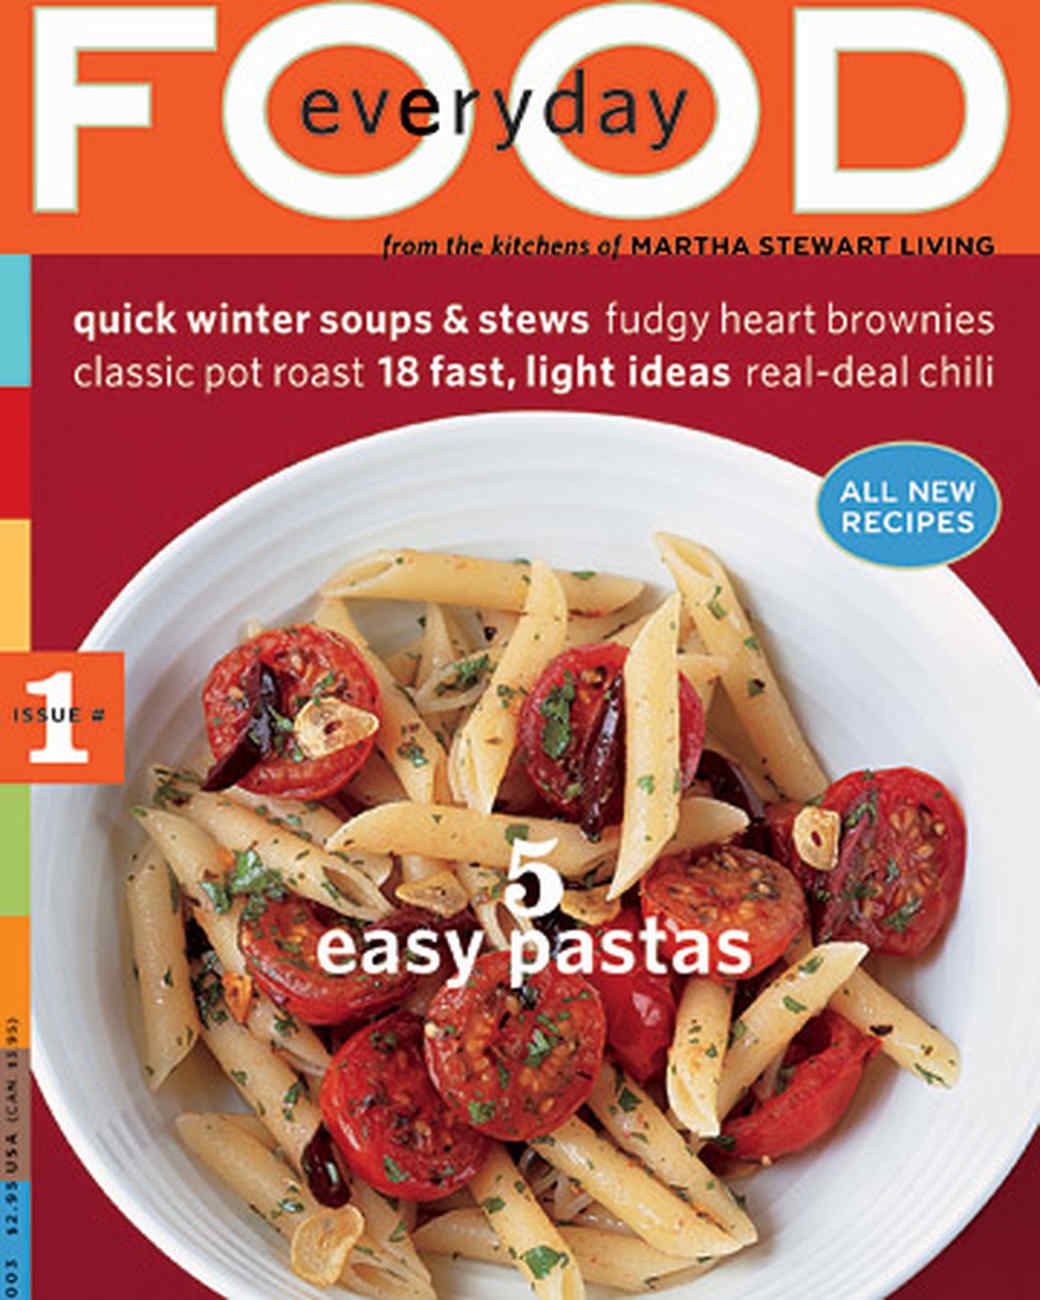 everyday_food_first_cover_2.jpg